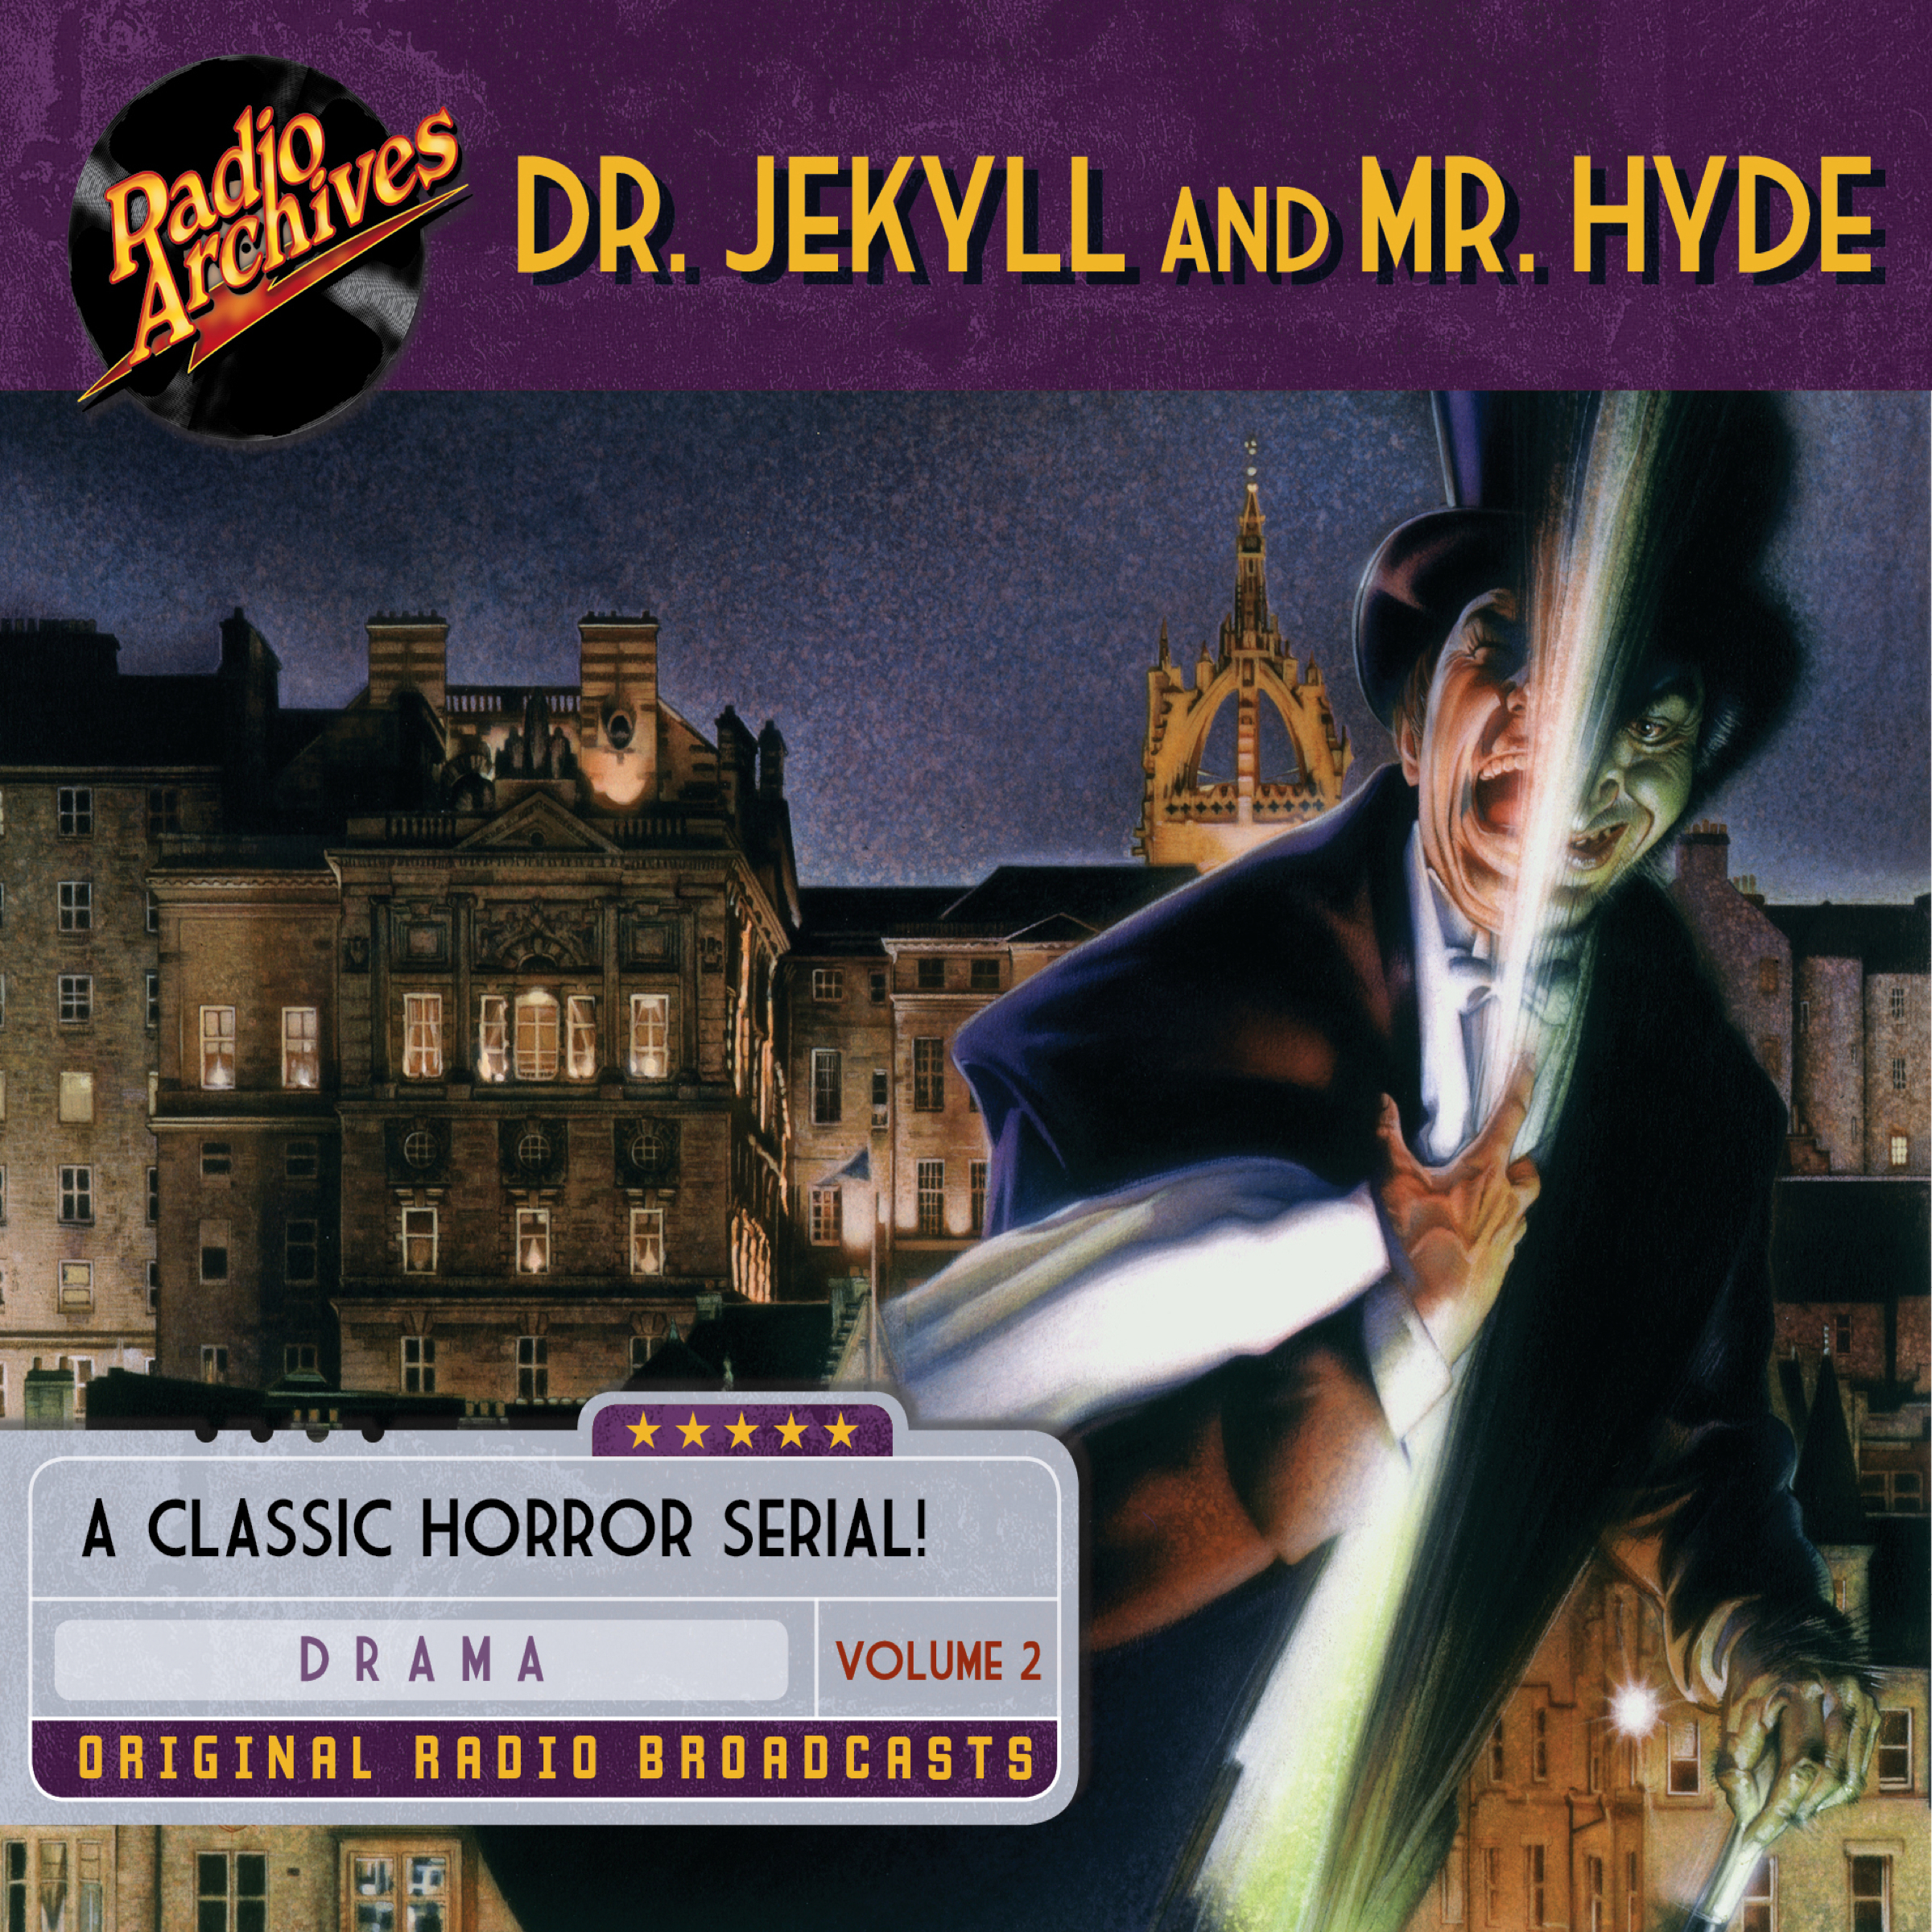 dr jekyll and mr hyde protrays culture victorian era I'm of the belief that the victorian era wrapped its dr jekyll, mr hyde and the victorian mr hyde and the victorian class perception extravaganza.